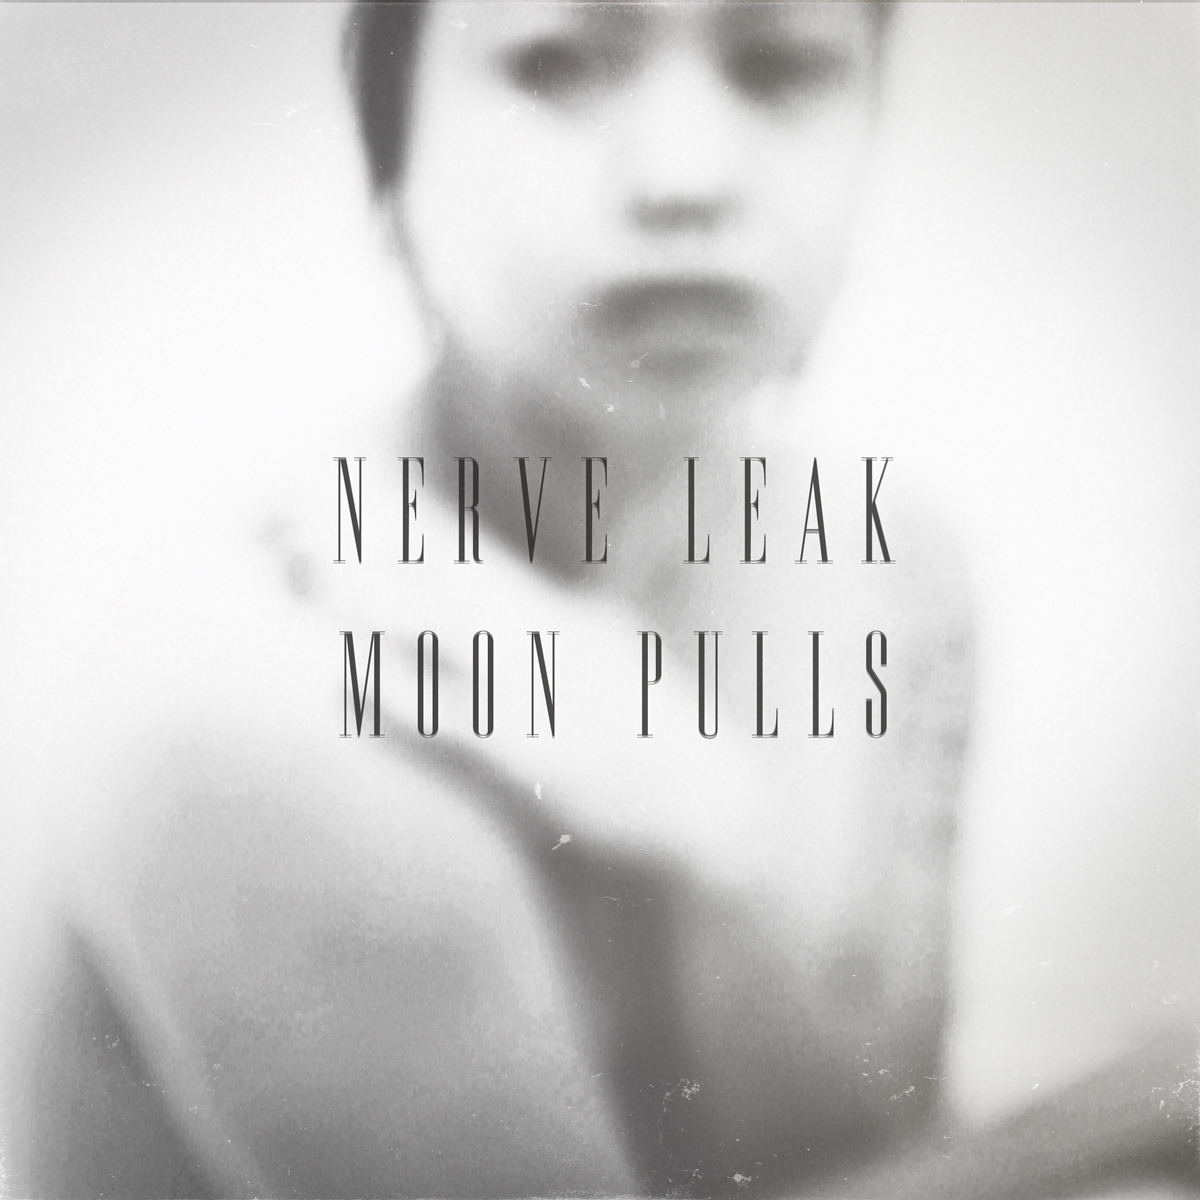 """Moon Pulls"""" by Nerve Leak is Northern Transmissions' 'Song of the Day'."""